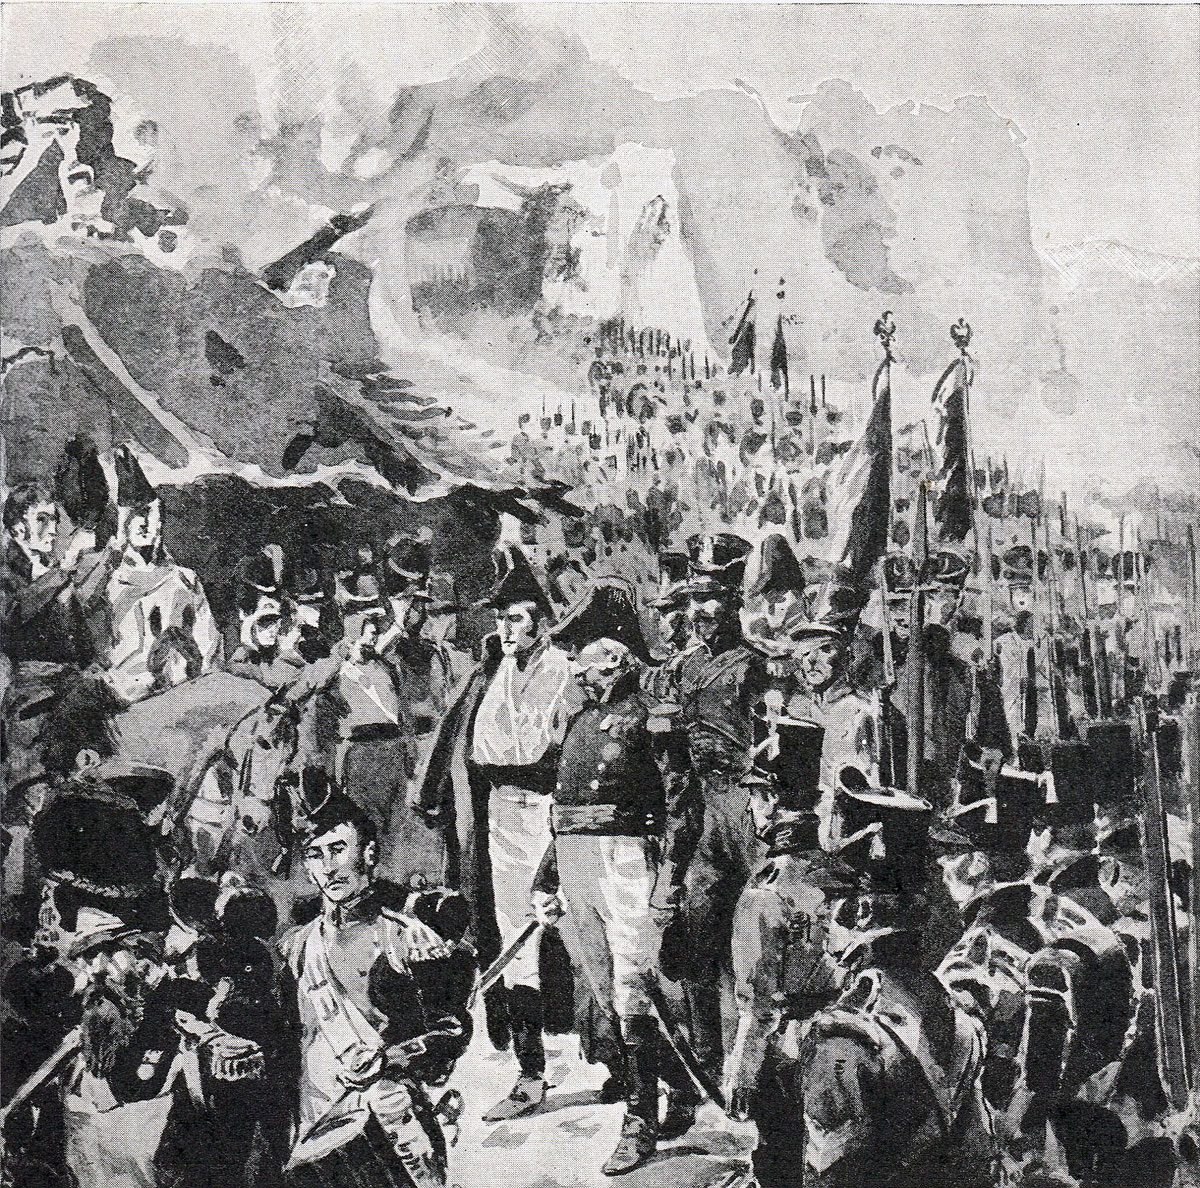 French garrison surrenders after the Storming of Badajoz on 6th April 1812 in the Peninsular War: picture by William Barnes Wollen